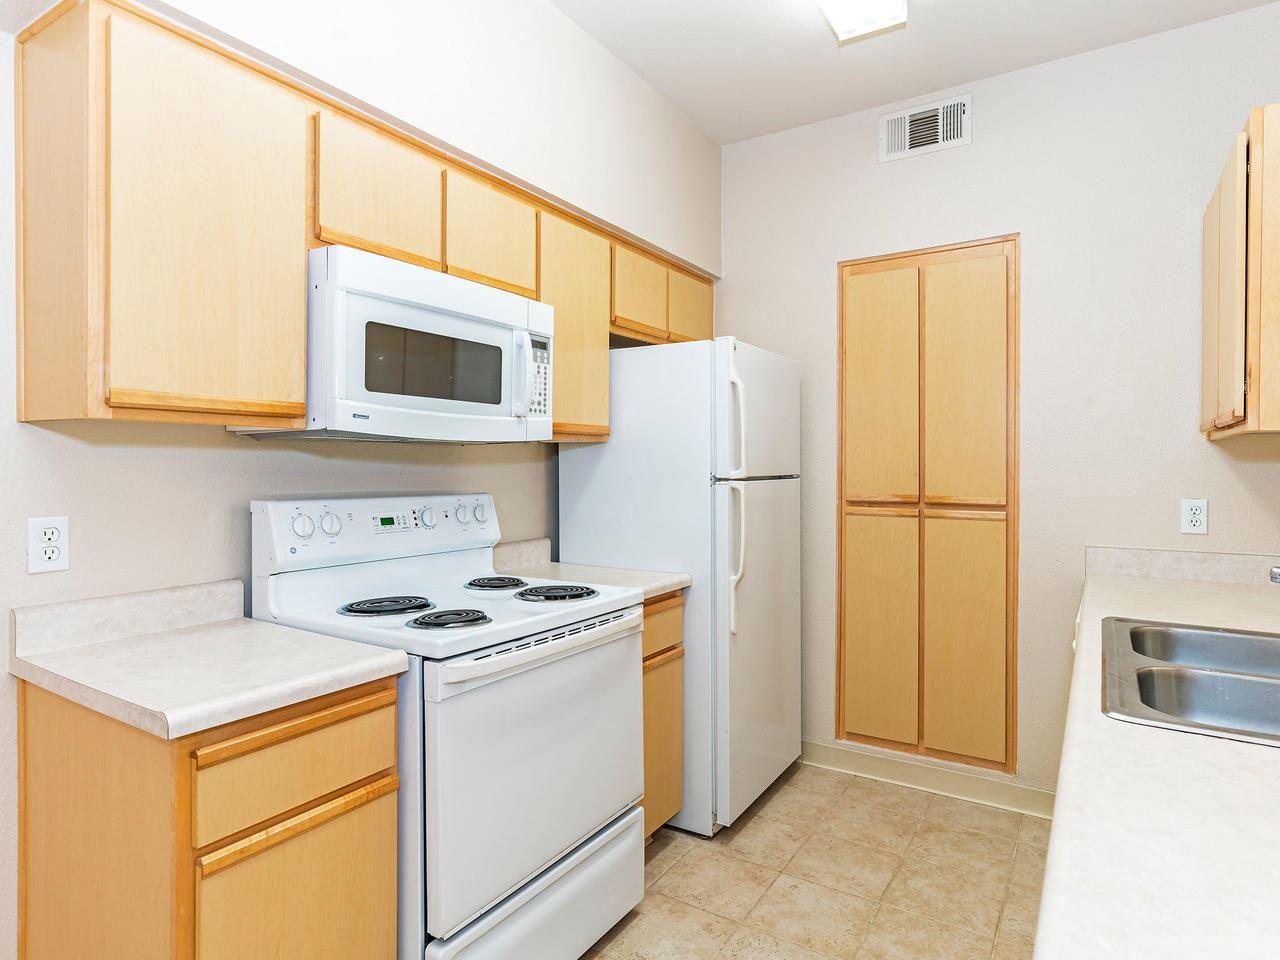 6850 Sharlands Unit G1038, #1038, Reno, NV 89523-2781